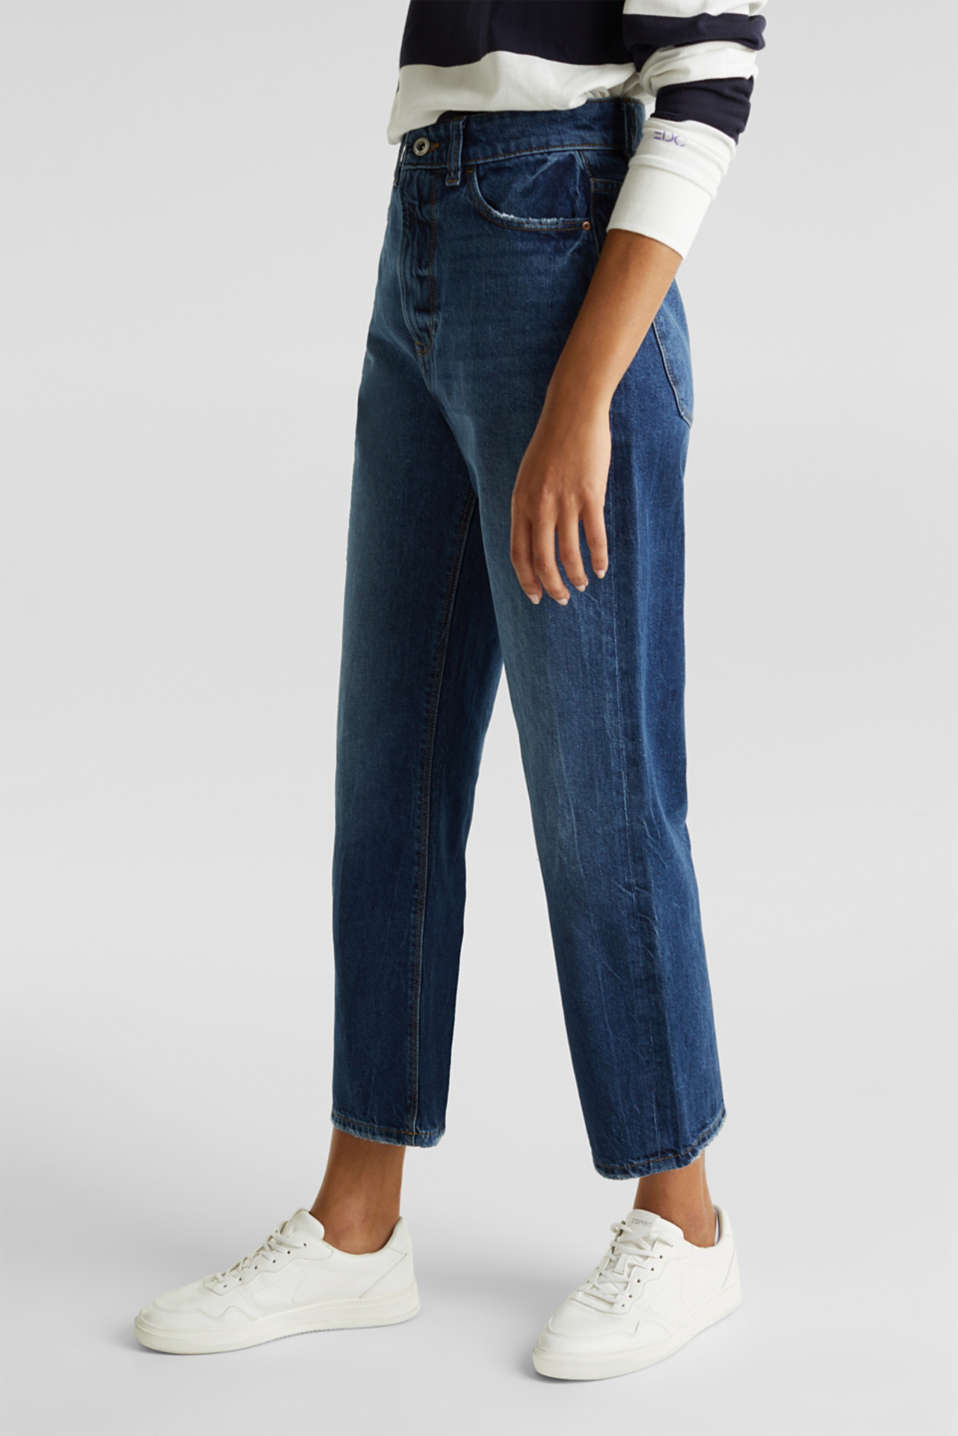 edc - Ankle-length stretch jeans with a wide leg